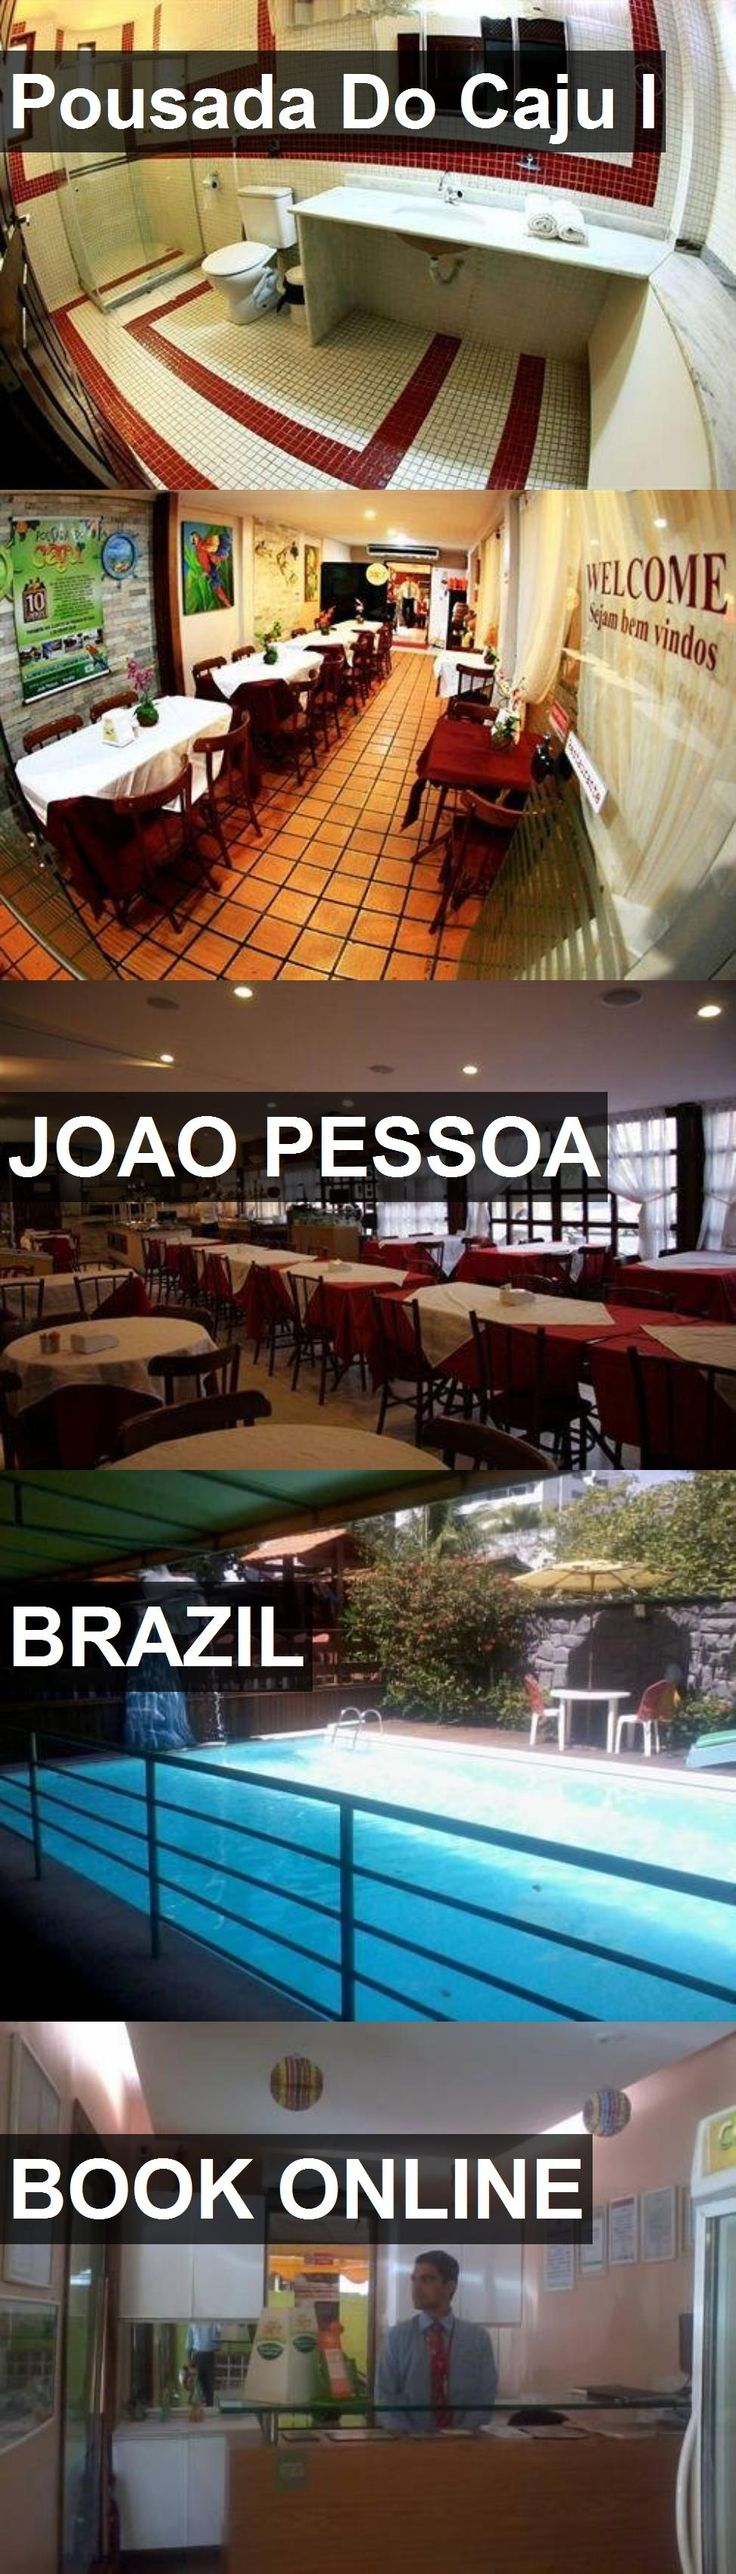 Hotel Pousada Do Caju I in Joao Pessoa, Brazil. For more information, photos, reviews and best prices please follow the link. #Brazil #JoaoPessoa #hotel #travel #vacation